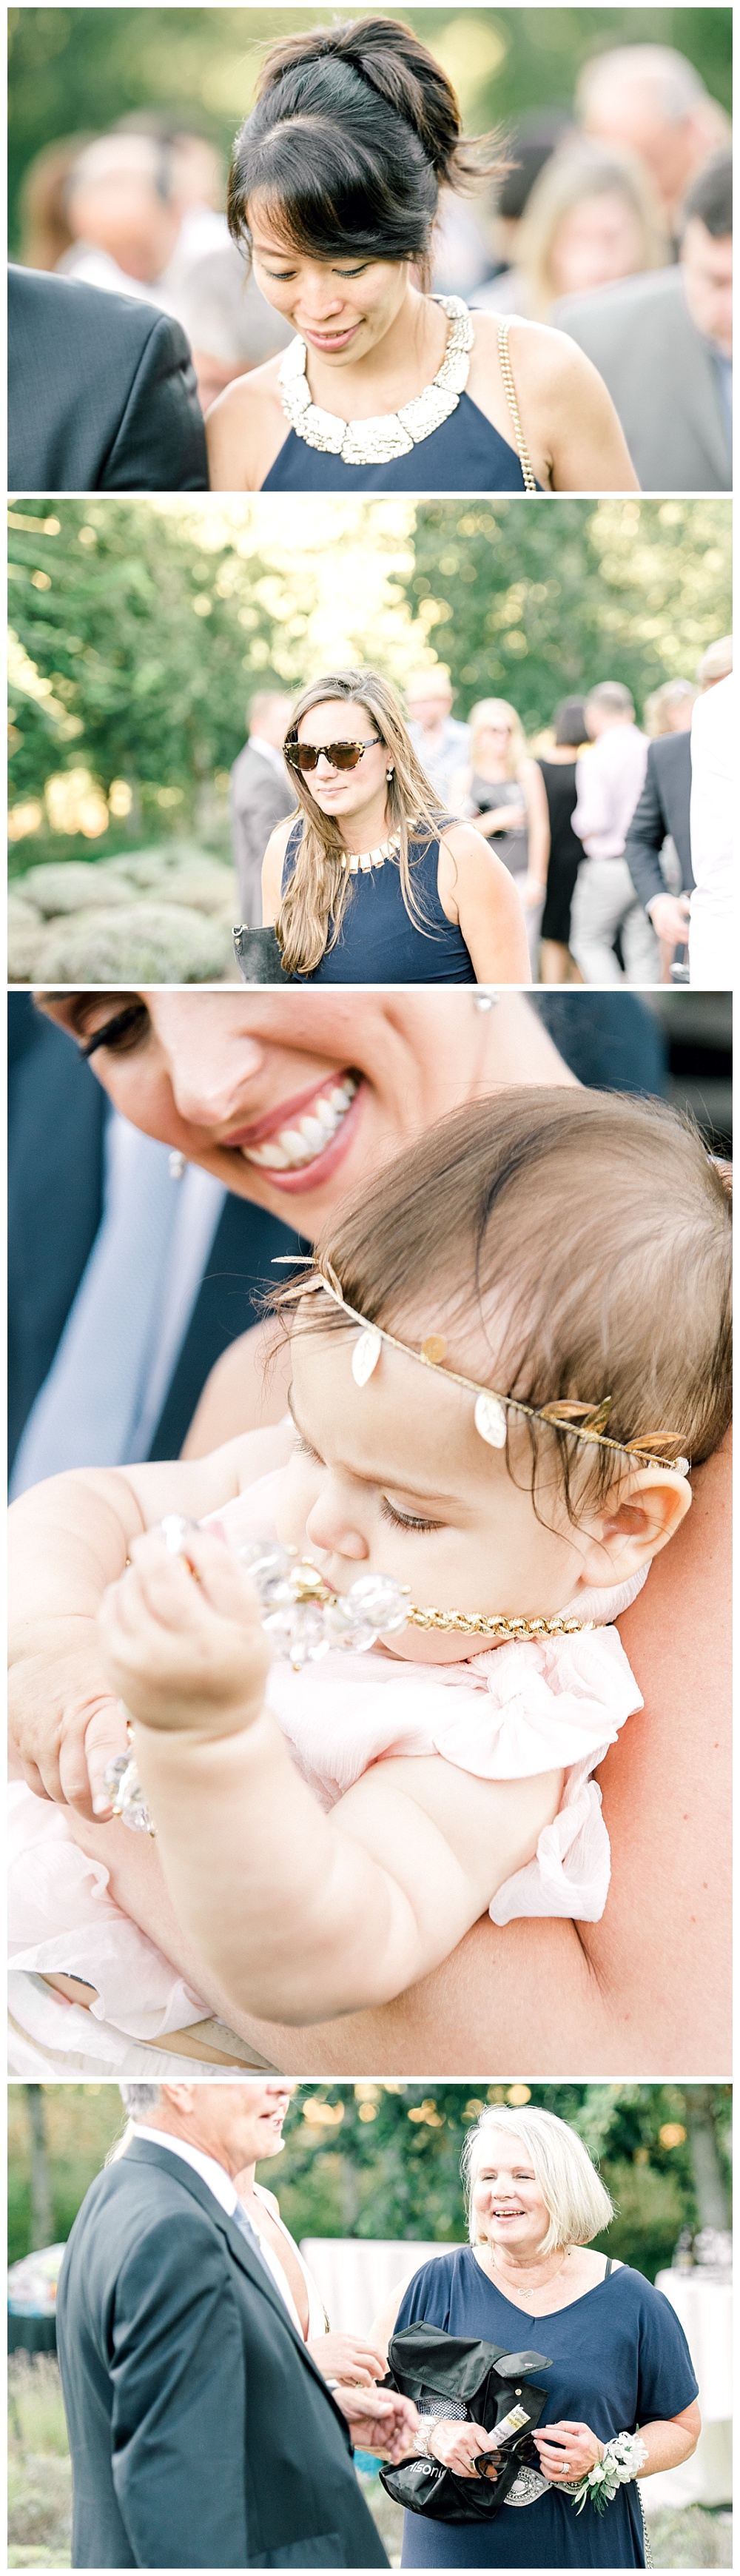 bride with adorable 1 year old baby, smiling